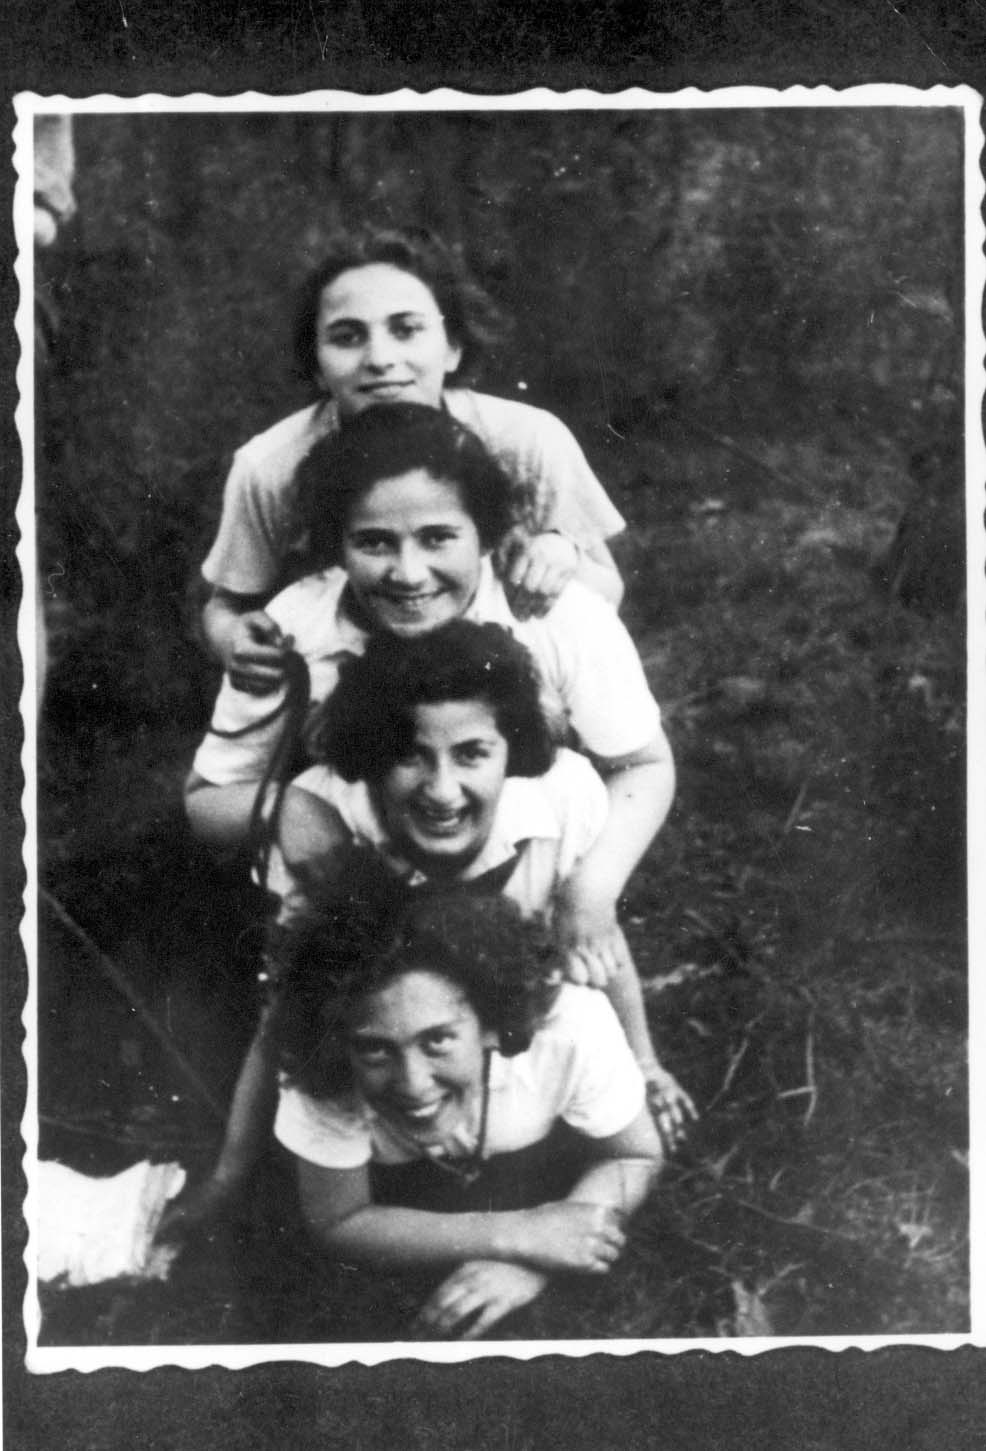 Wloclawek, Poland, 29/04/1937, Members of the Hashomer Hatzair movement during Lag ba'Omer. At the top: Mira Izbitzcka. At the bottom: Tosia Altman.